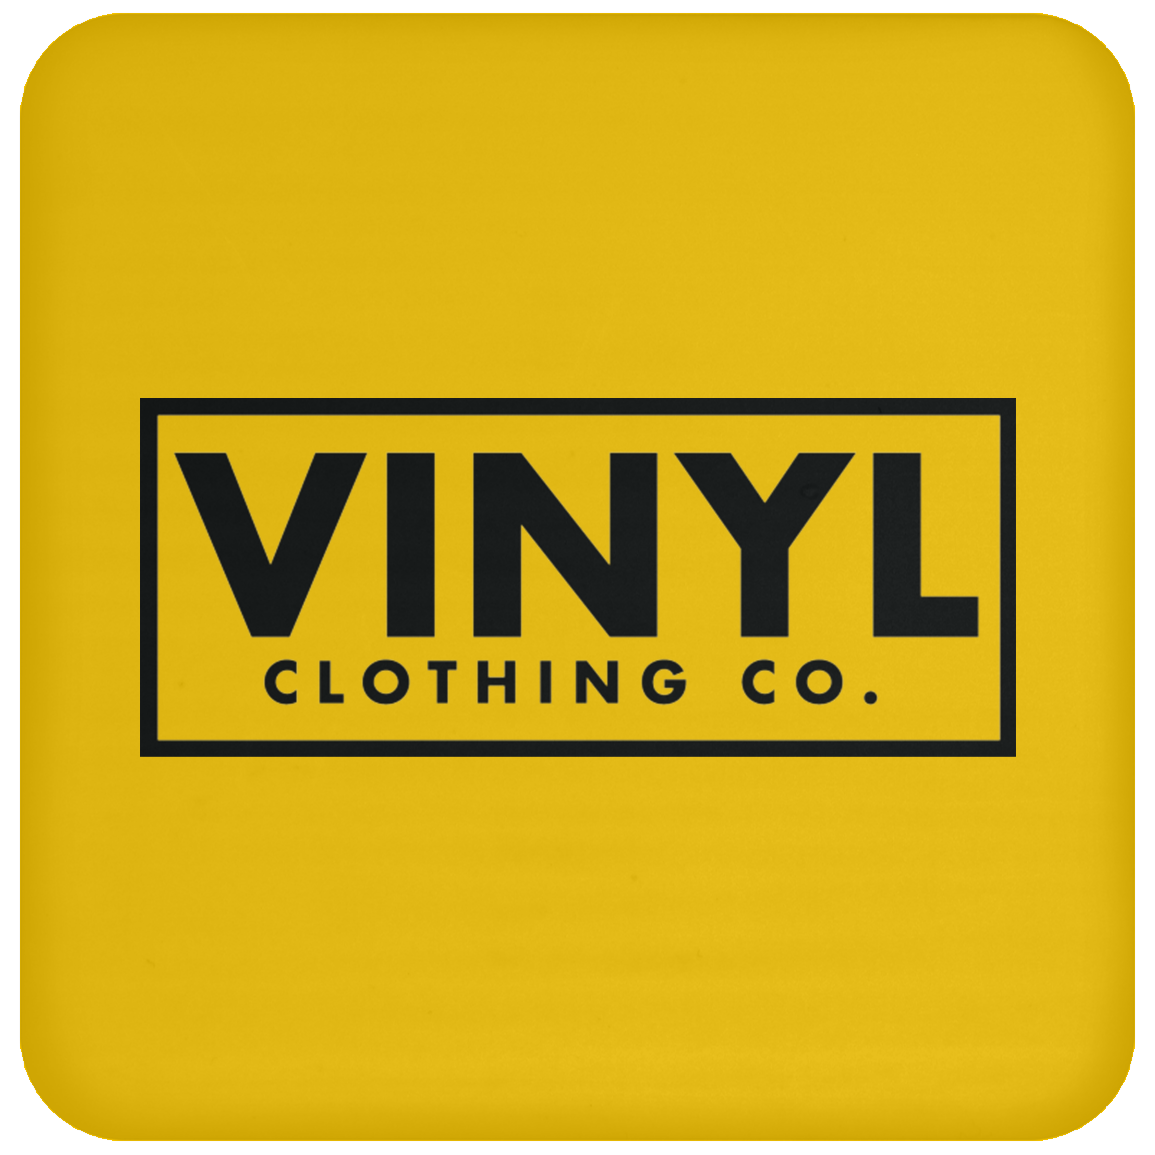 Vinyl Clothing Co. Coaster - Vinyl Clothing Co - DJ Apparel Clothing Disc Jockey Vinyl Gear